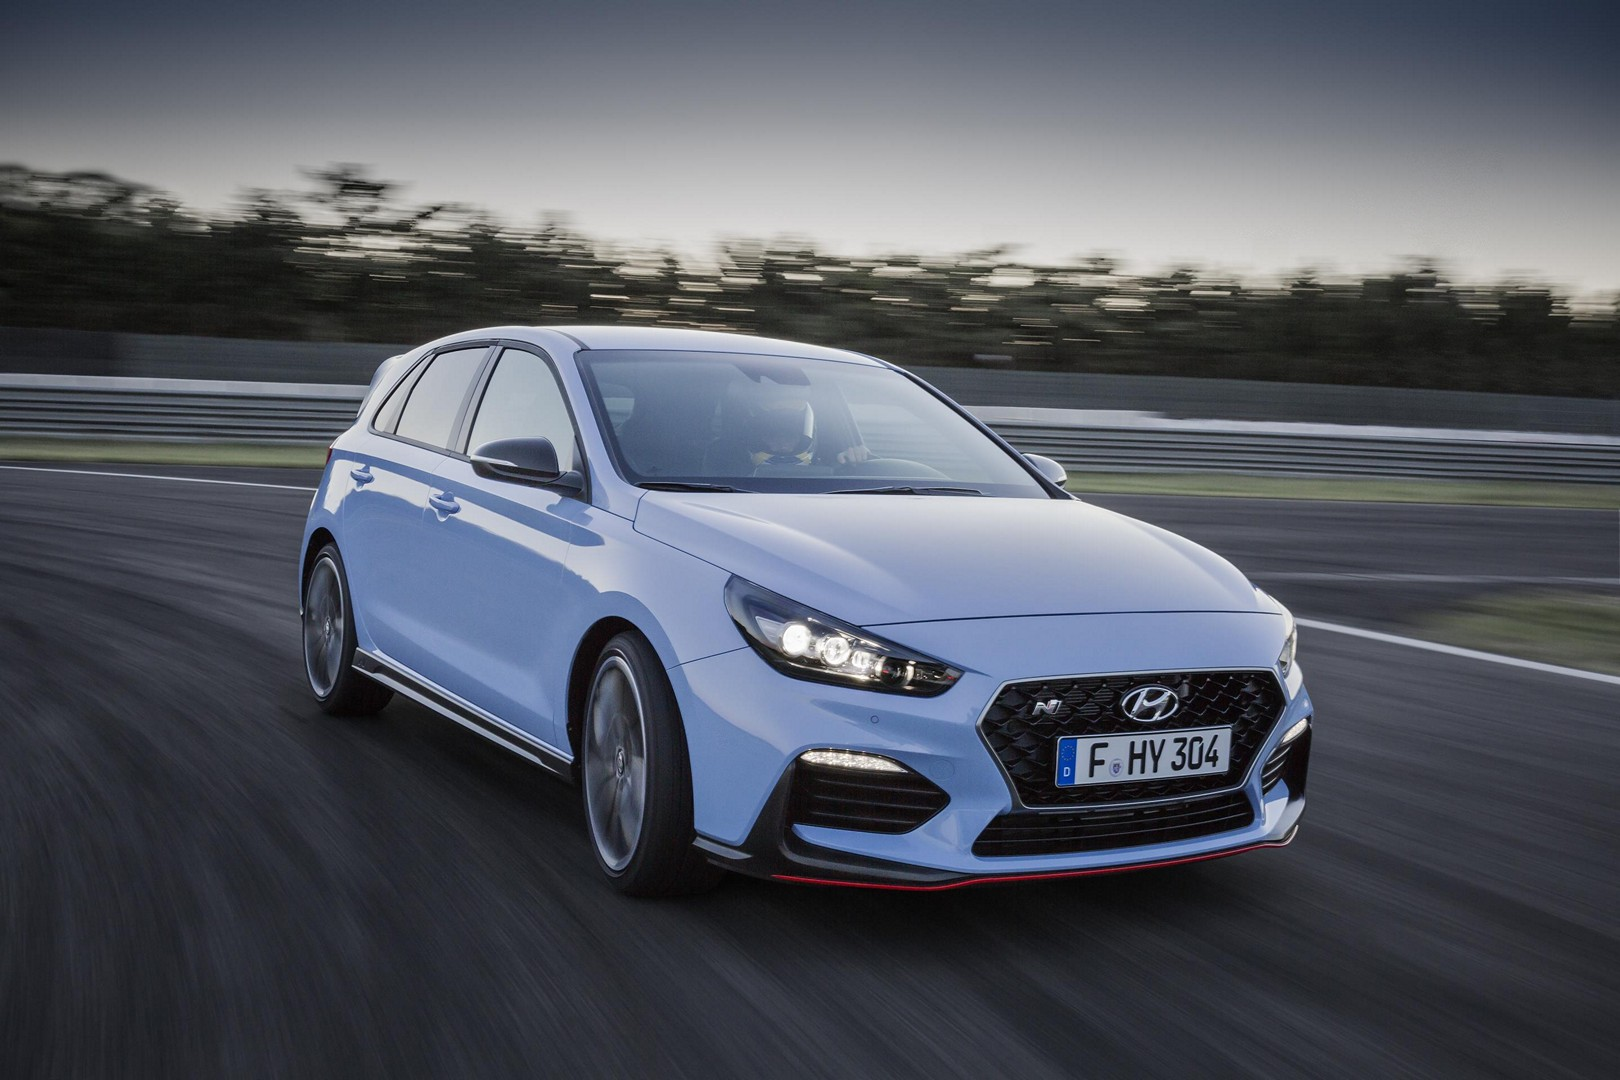 hyundai i30 n tourer looks like an autobahn stormer for the whole family autoevolution. Black Bedroom Furniture Sets. Home Design Ideas